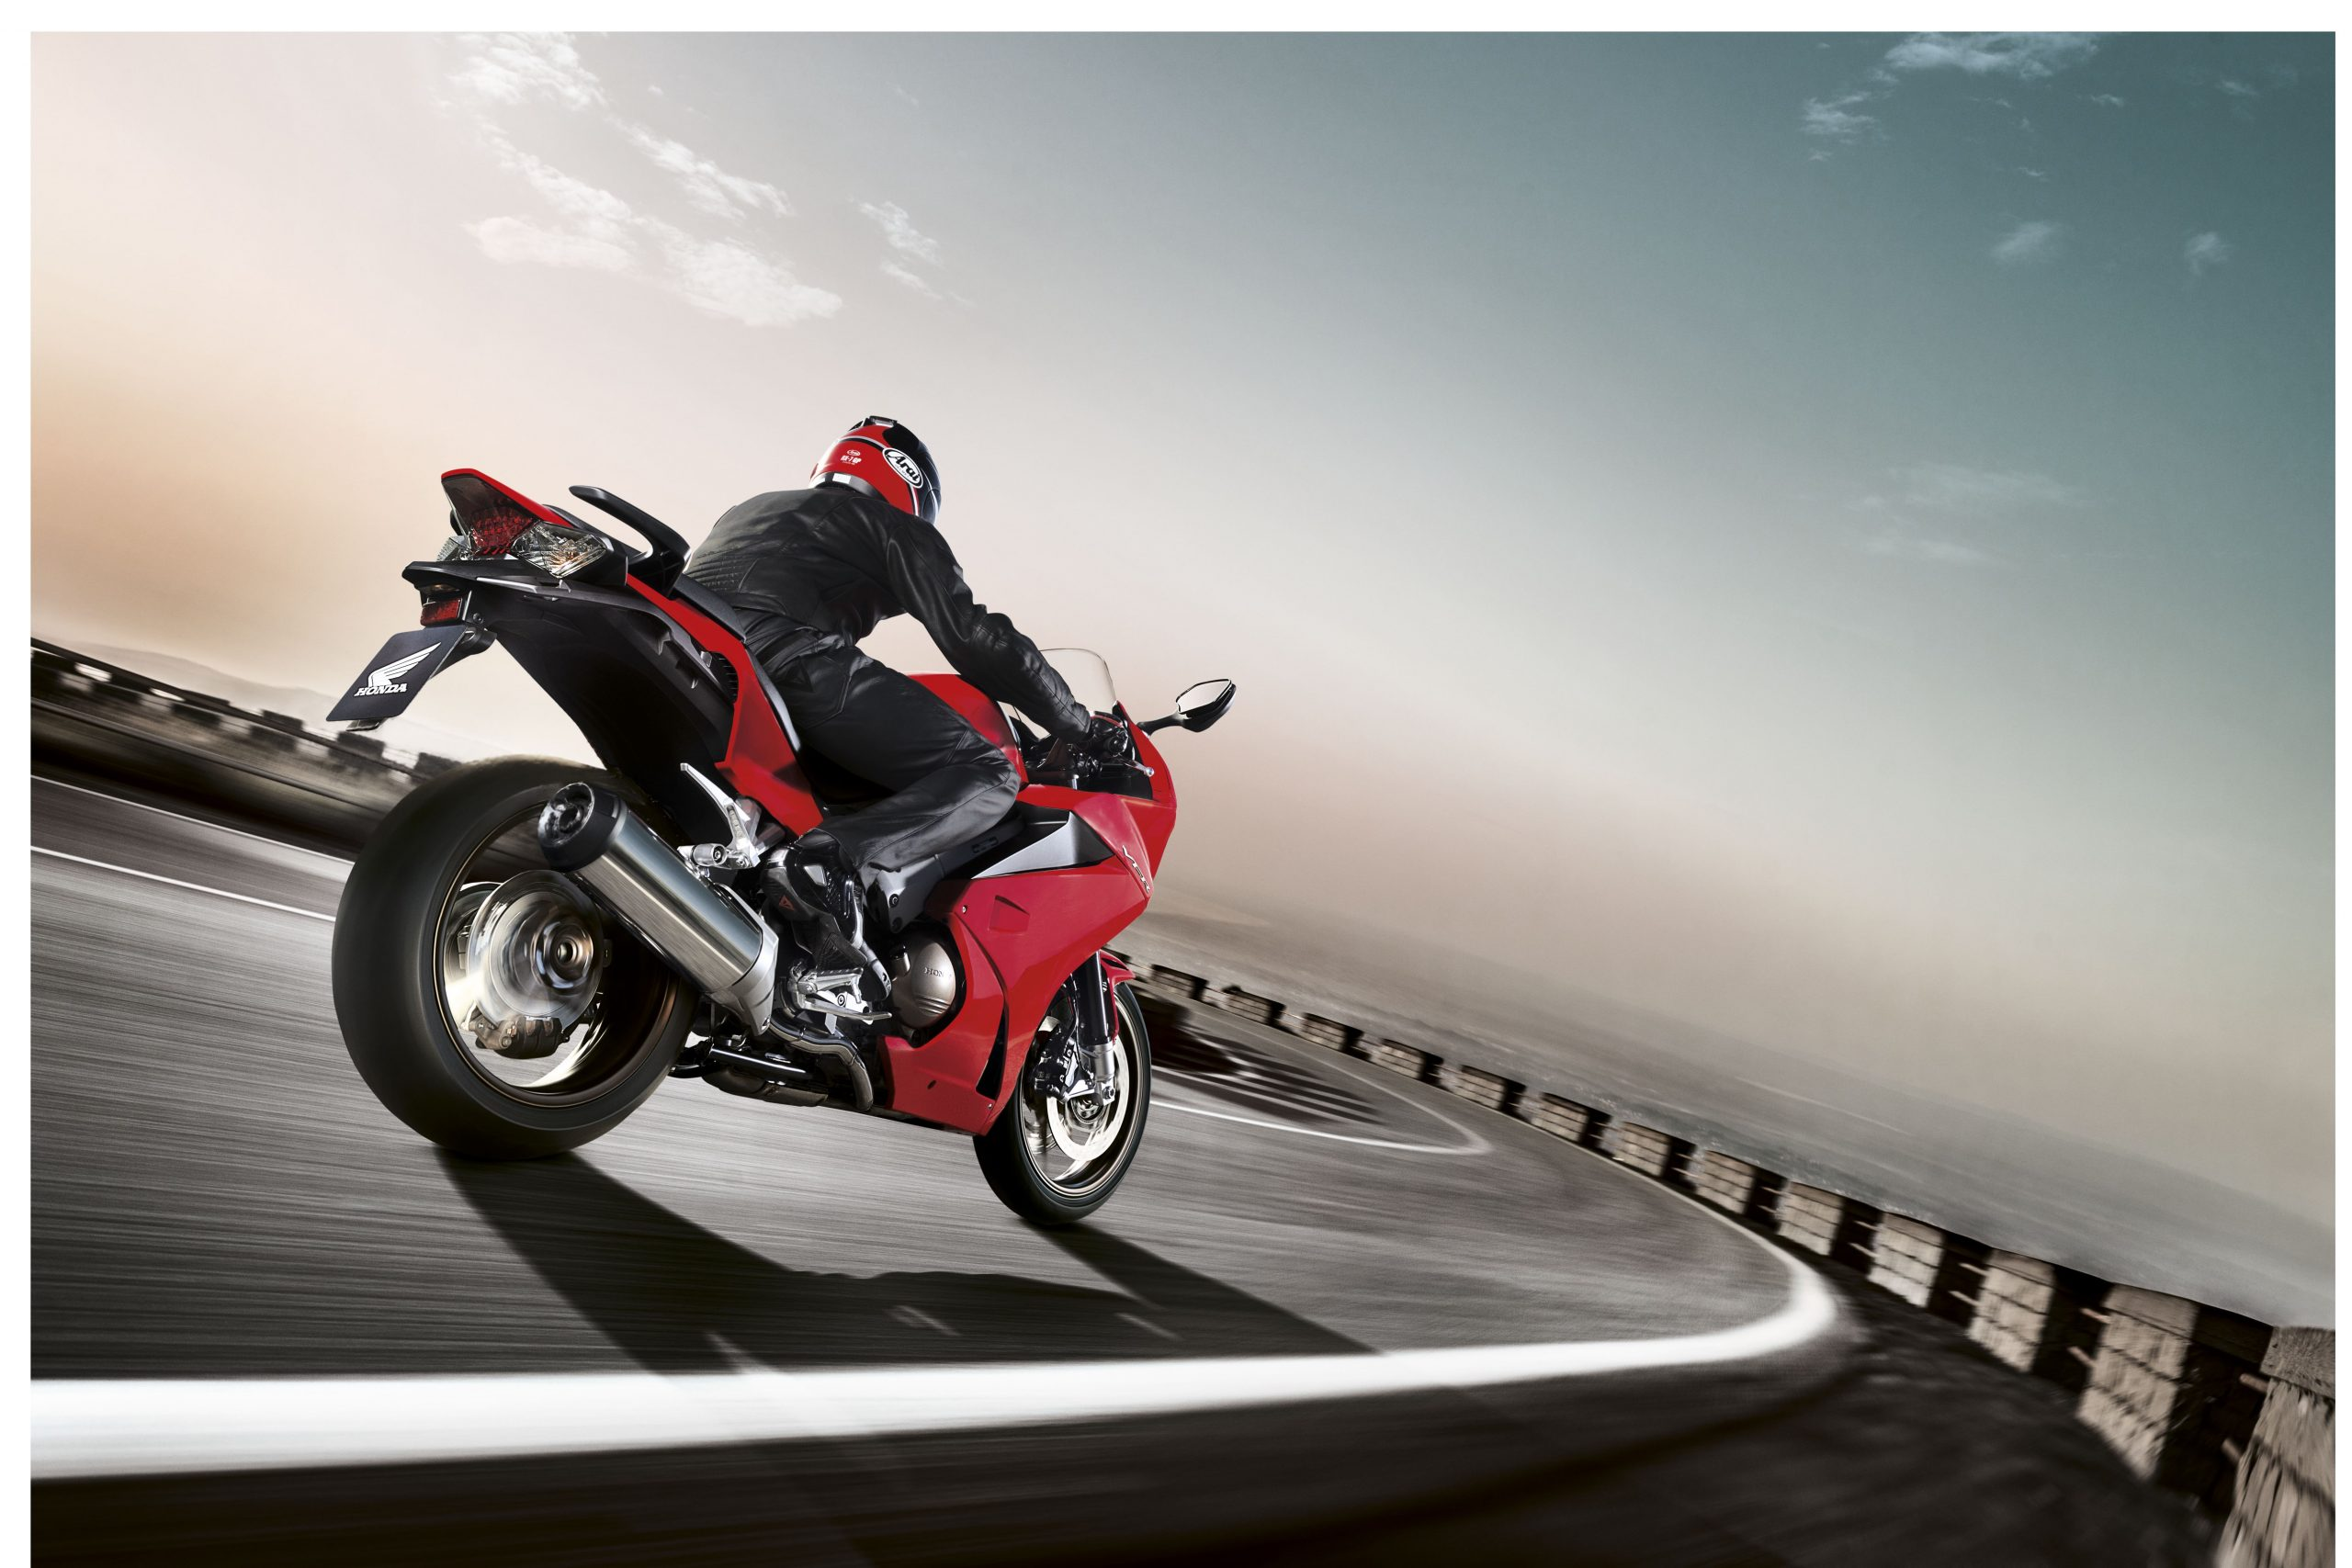 Motorbike types, sports tourer Honda VFR800F